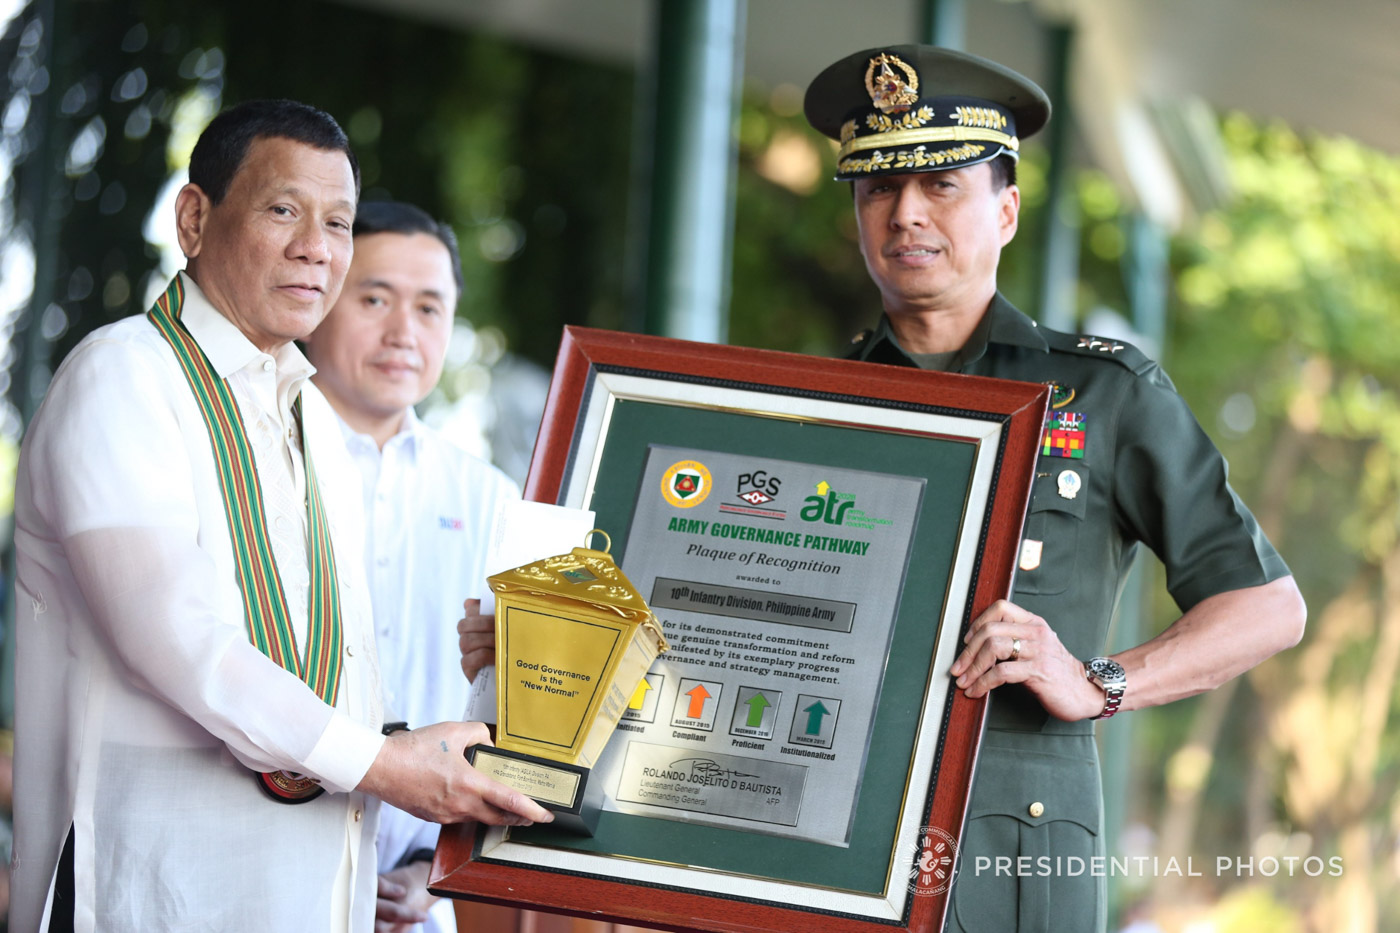 AWARDEE. President Rodrigo Duterte confers the Army Governance Pathway Institutionalized Medallion award on the 10th Infantry Division represented by its commander, Major General Noel Clement.